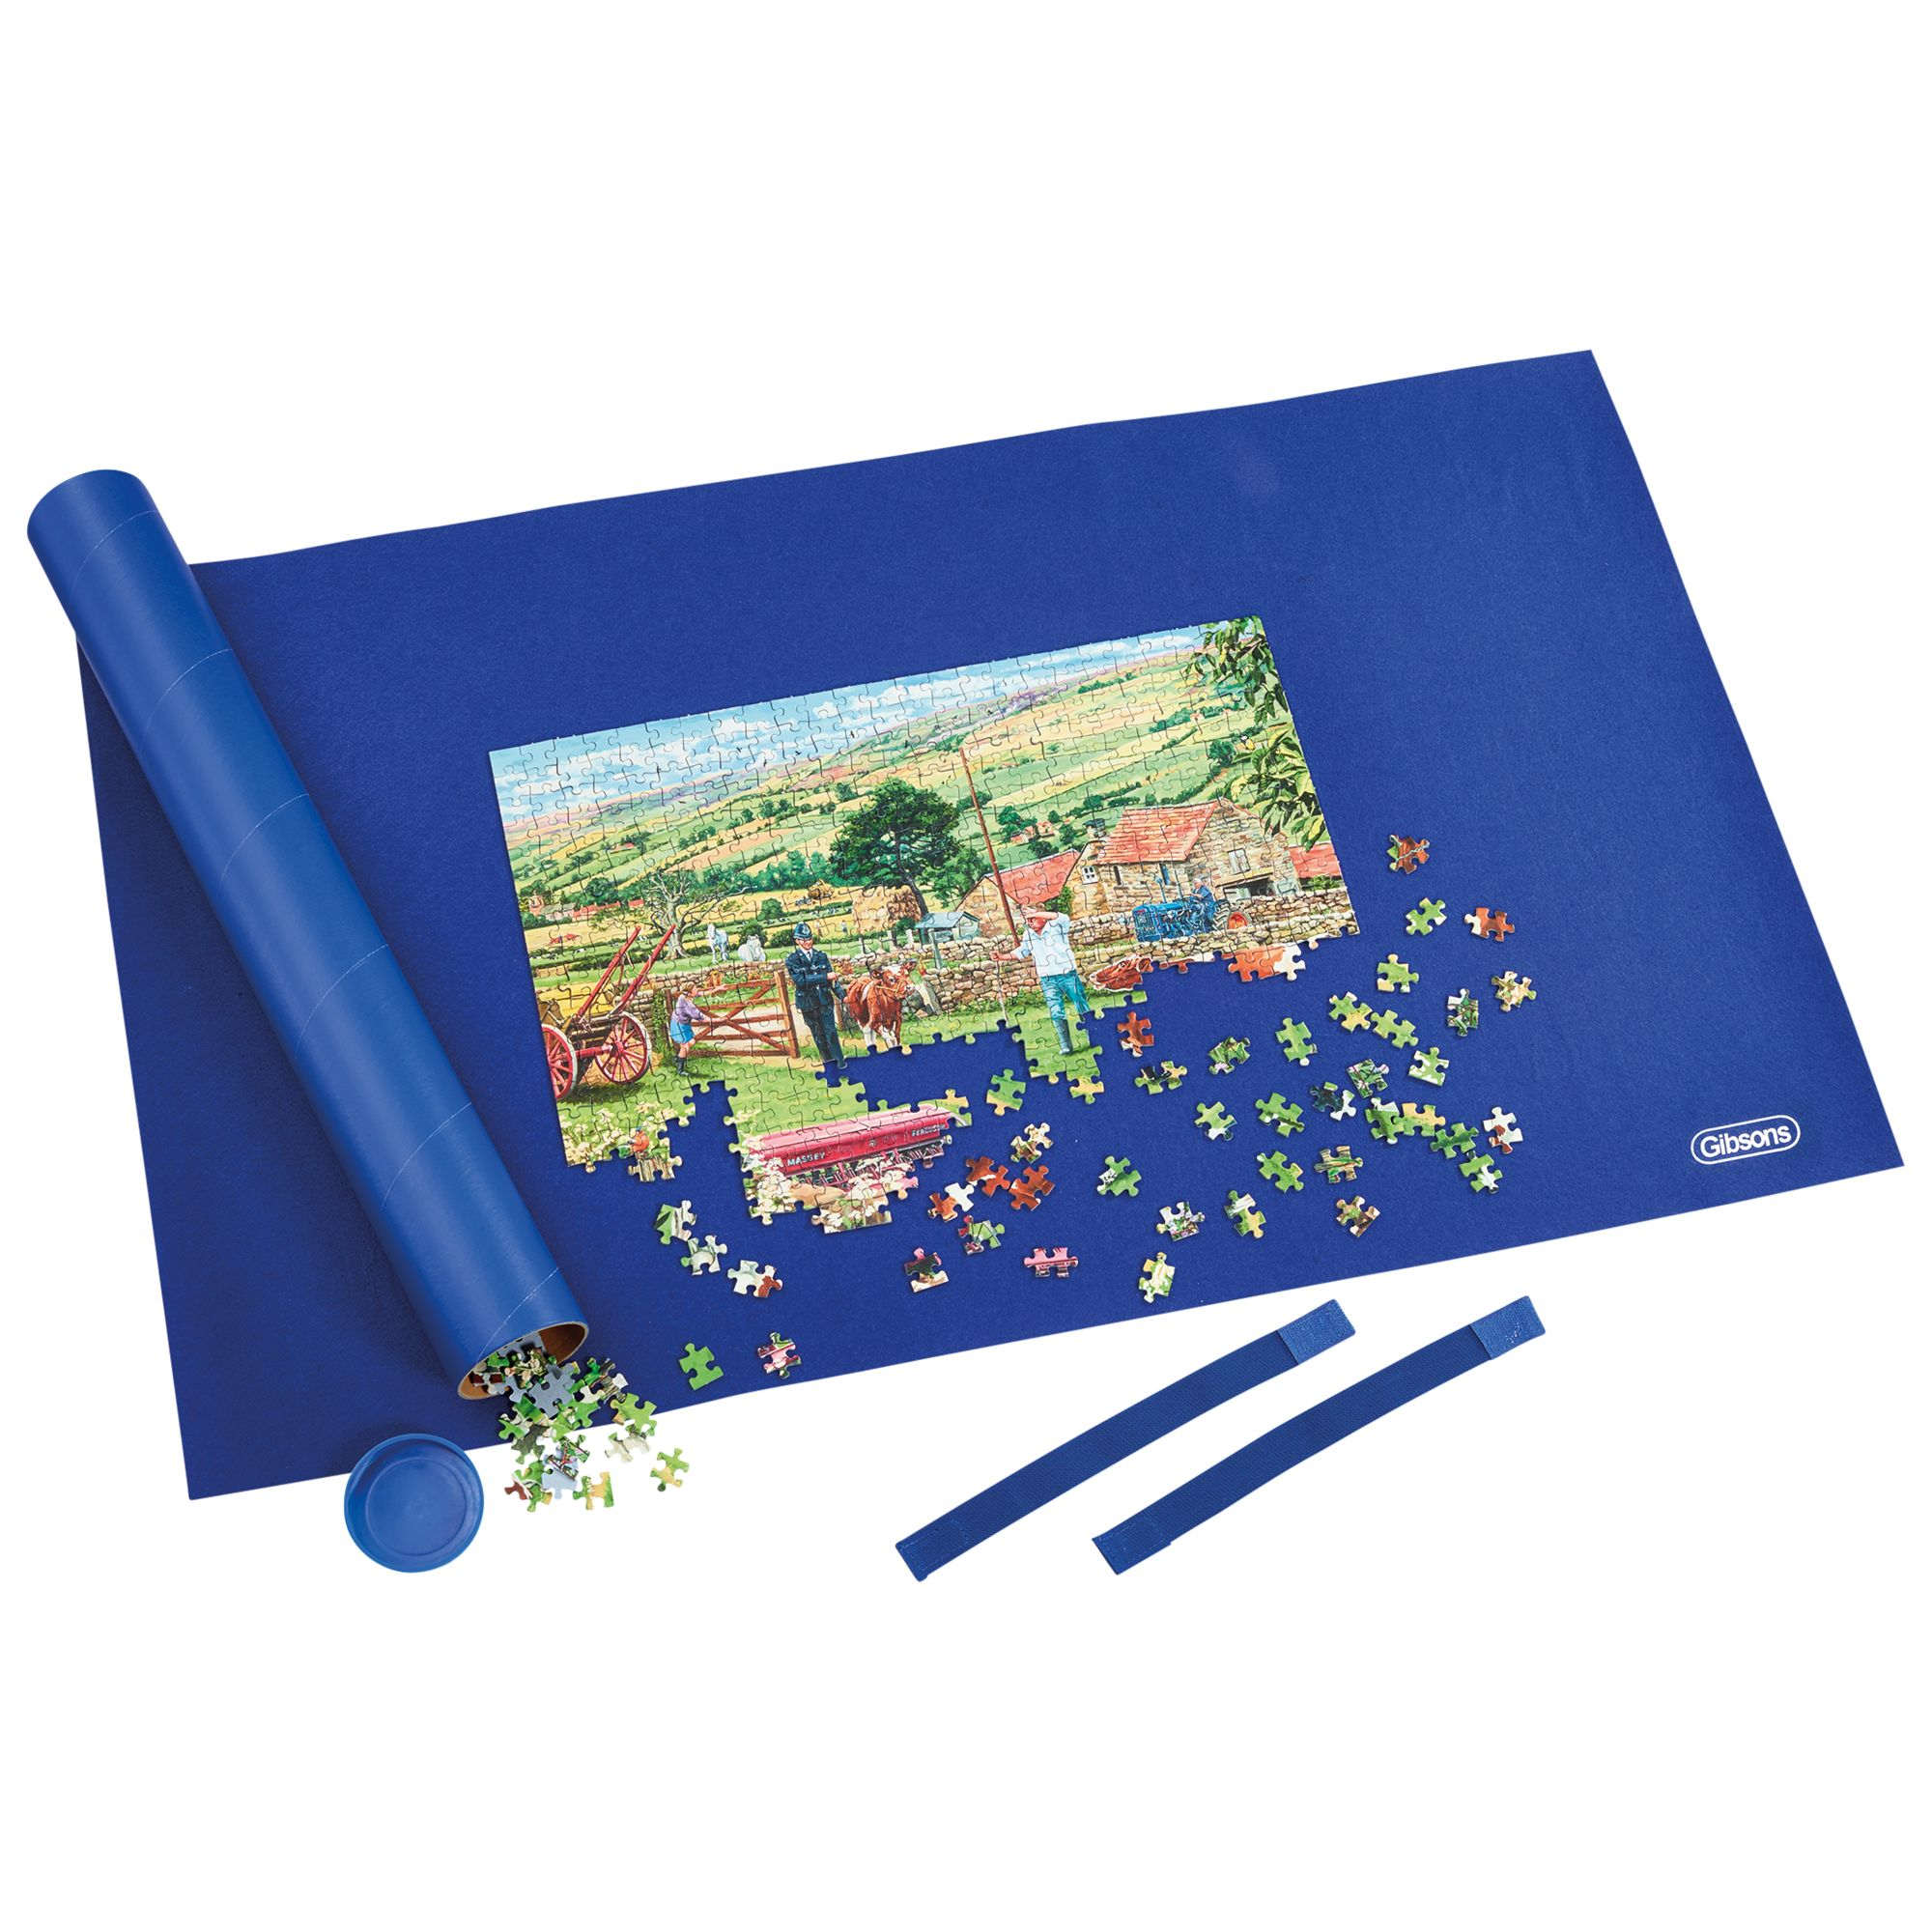 Gibsons Gibsons Puzzle Roll